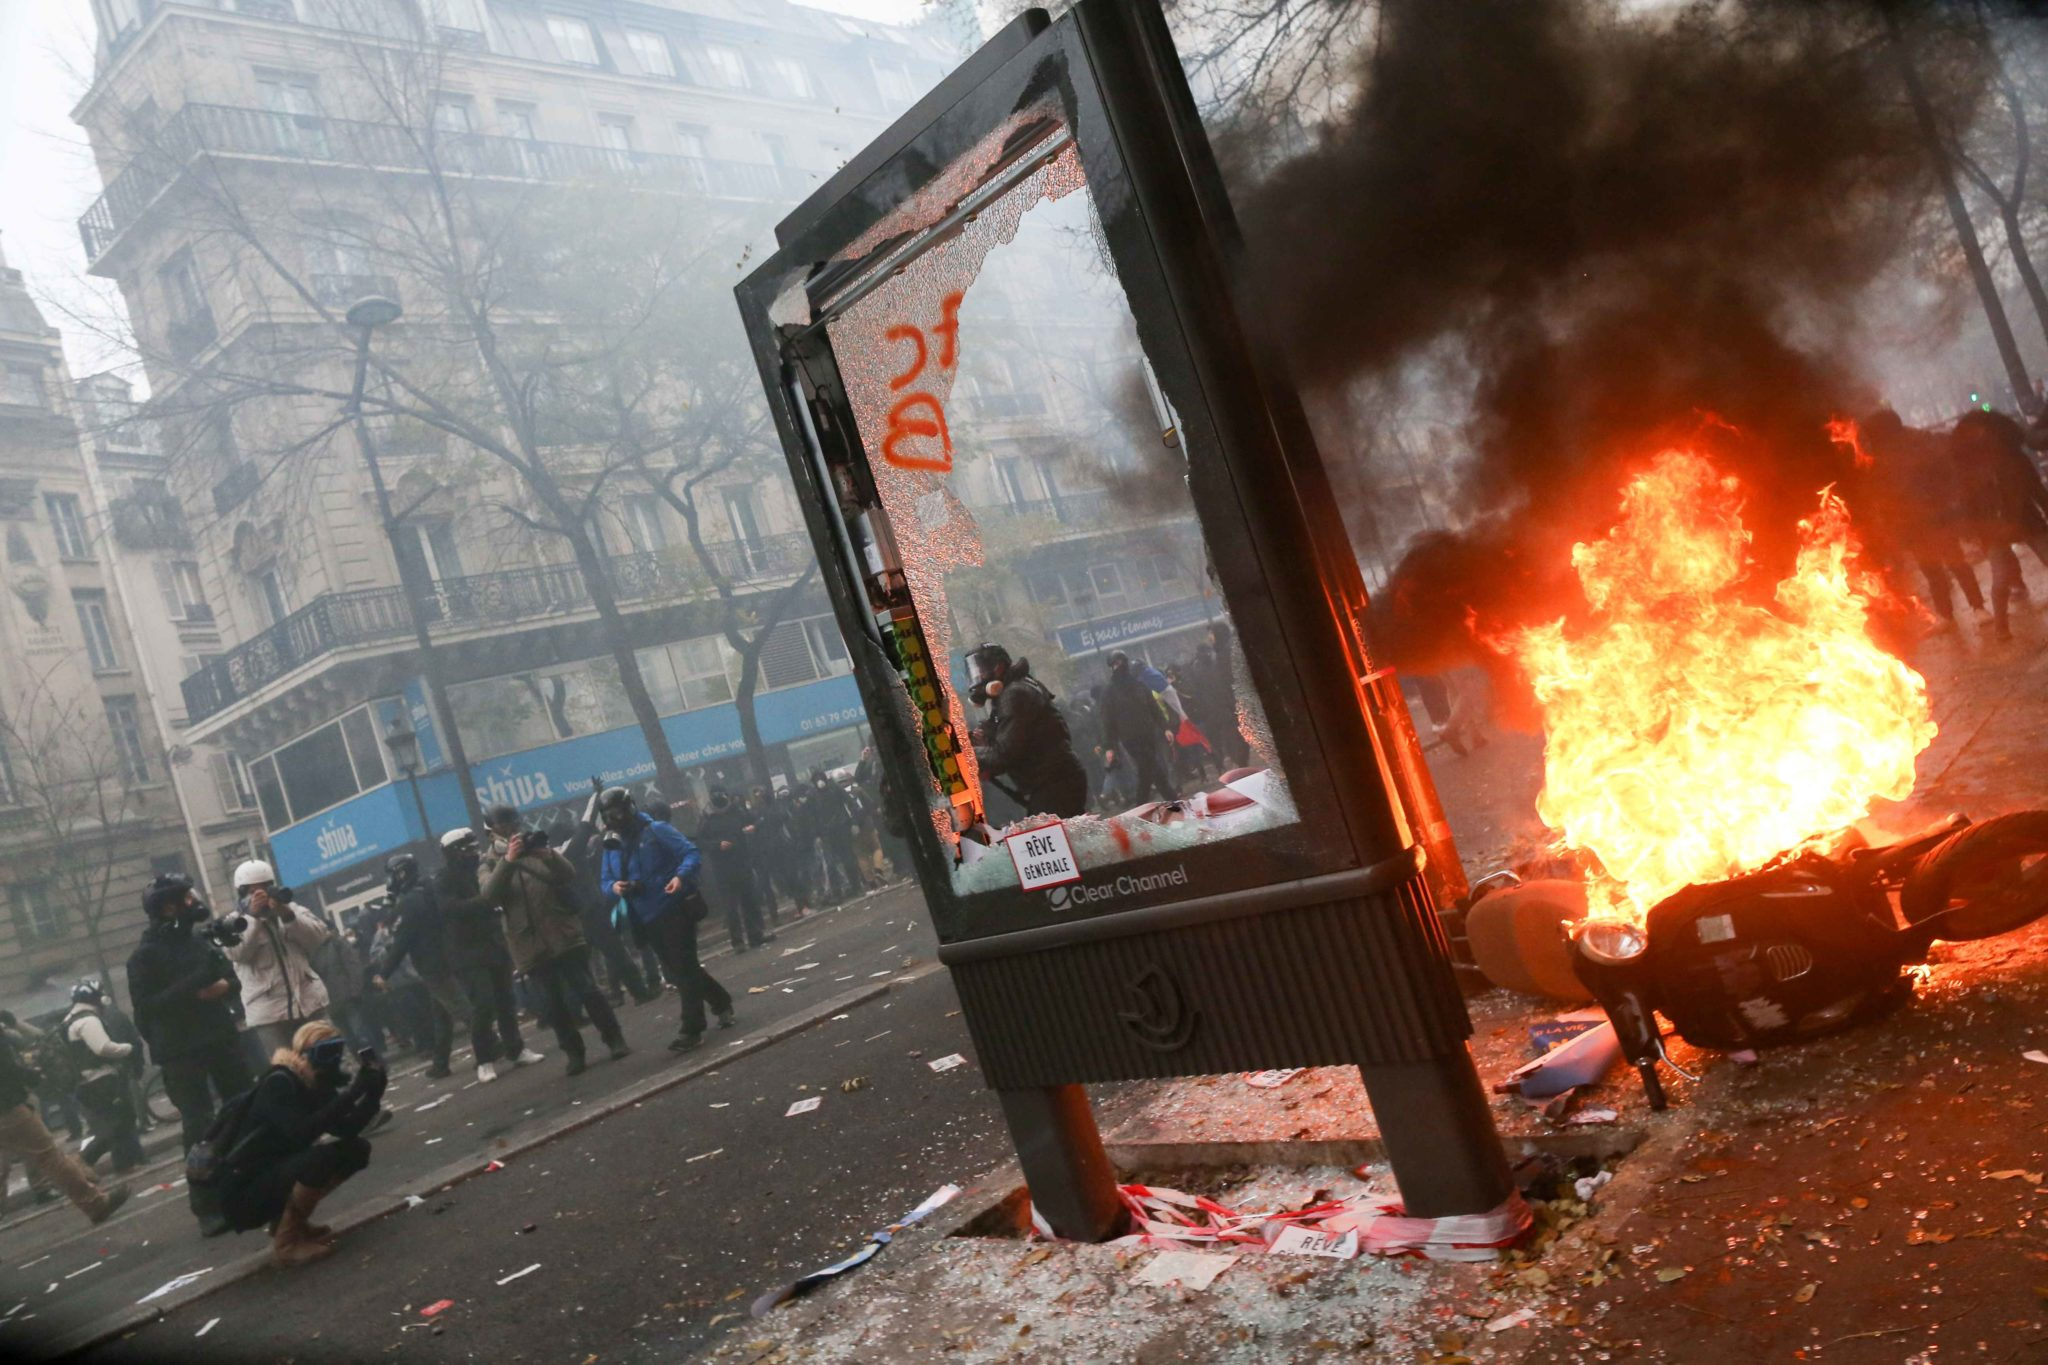 A publicity pane is destroyed and a scooter set on fire during a demontration to protest against the pension overhauls, in Paris, on December 5, 2019 as part of a national general strike. Trains cancelled, schools closed: France scrambled to make contingen